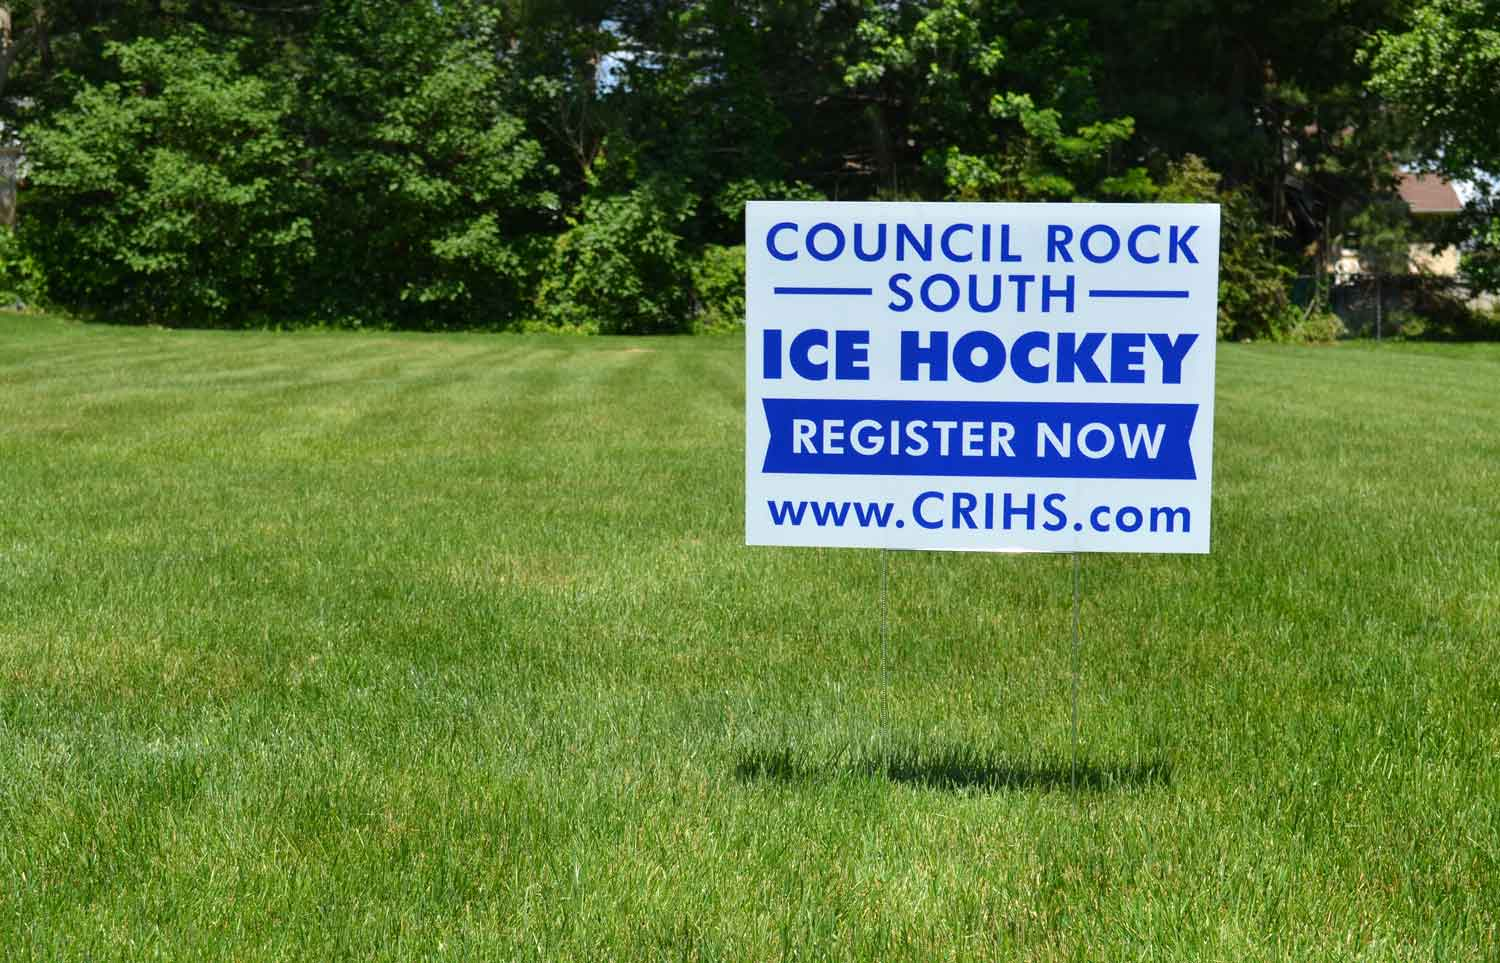 Sporting Event Lawn Sign